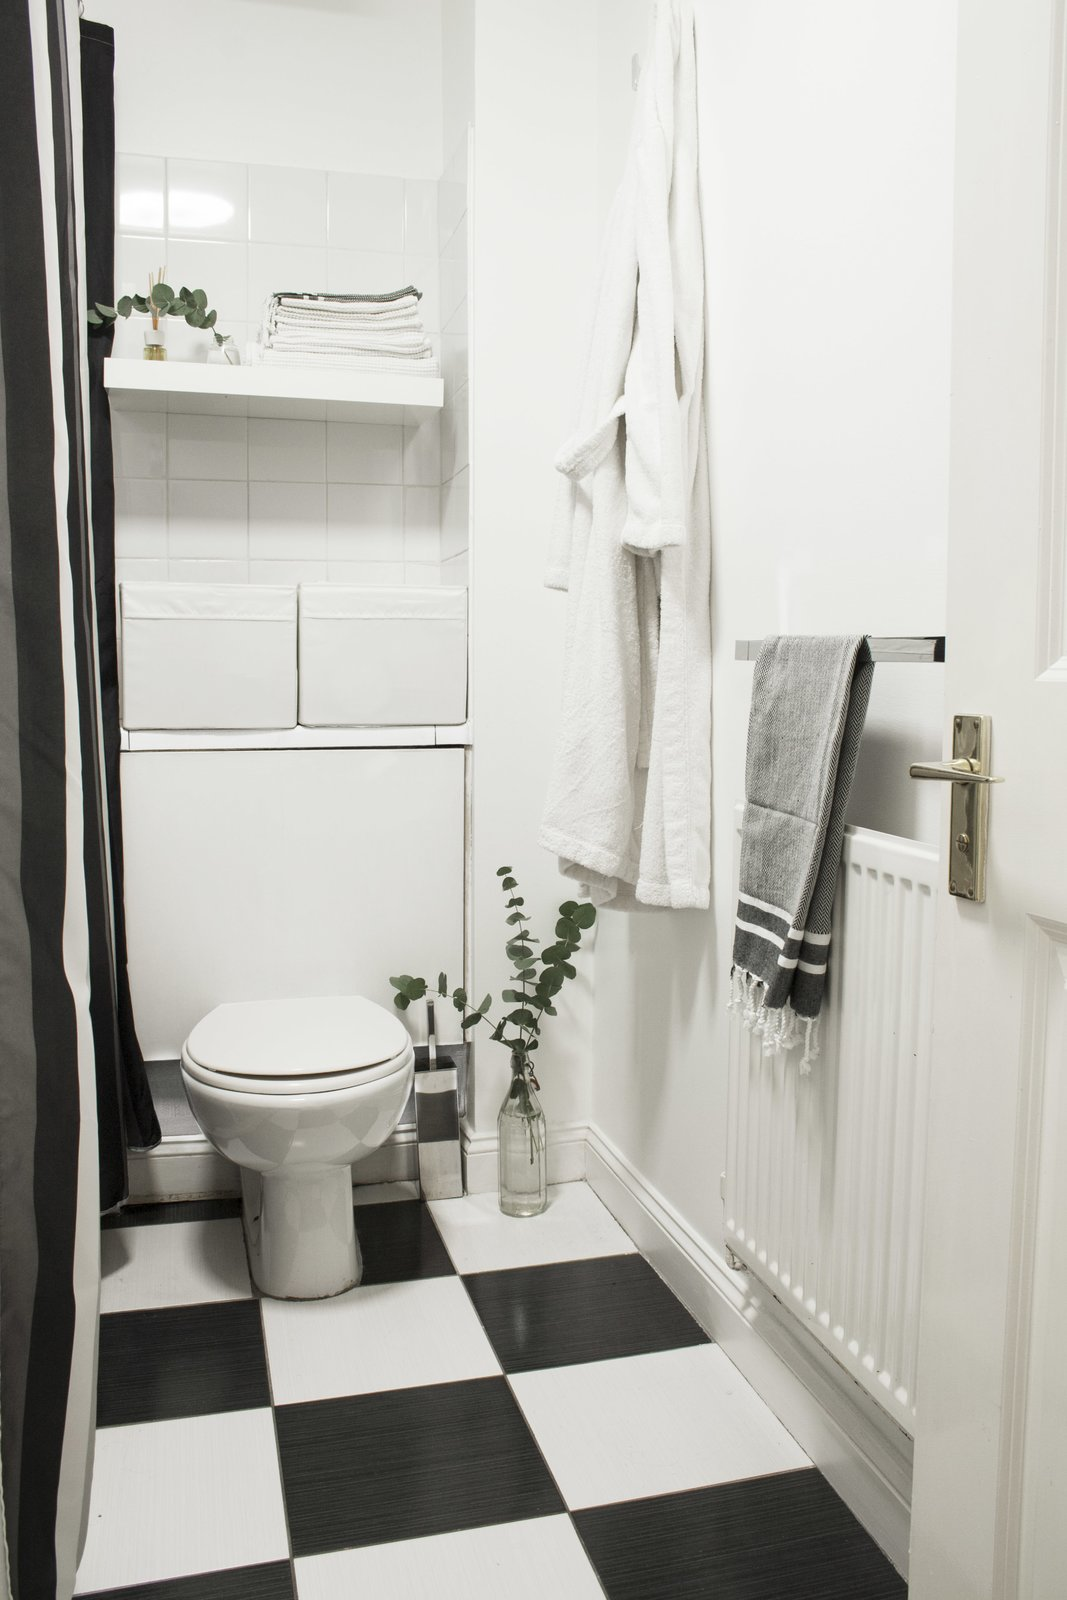 Bath Room, Porcelain Tile Floor, One Piece Toilet, and Ceramic Tile Wall Though their wish was to redo the whole bathroom, they decided to stick to a budget and preserve the original black-and-white tiles, which are common in London flats. They ended up keeping it simple and accentuating the color palette with a black-and-white shower curtain and some new white storage elements.  Photo 8 of 8 in Two Architects Revive Their London Flat With Minimal Furnishings and a Fresh Dose of White